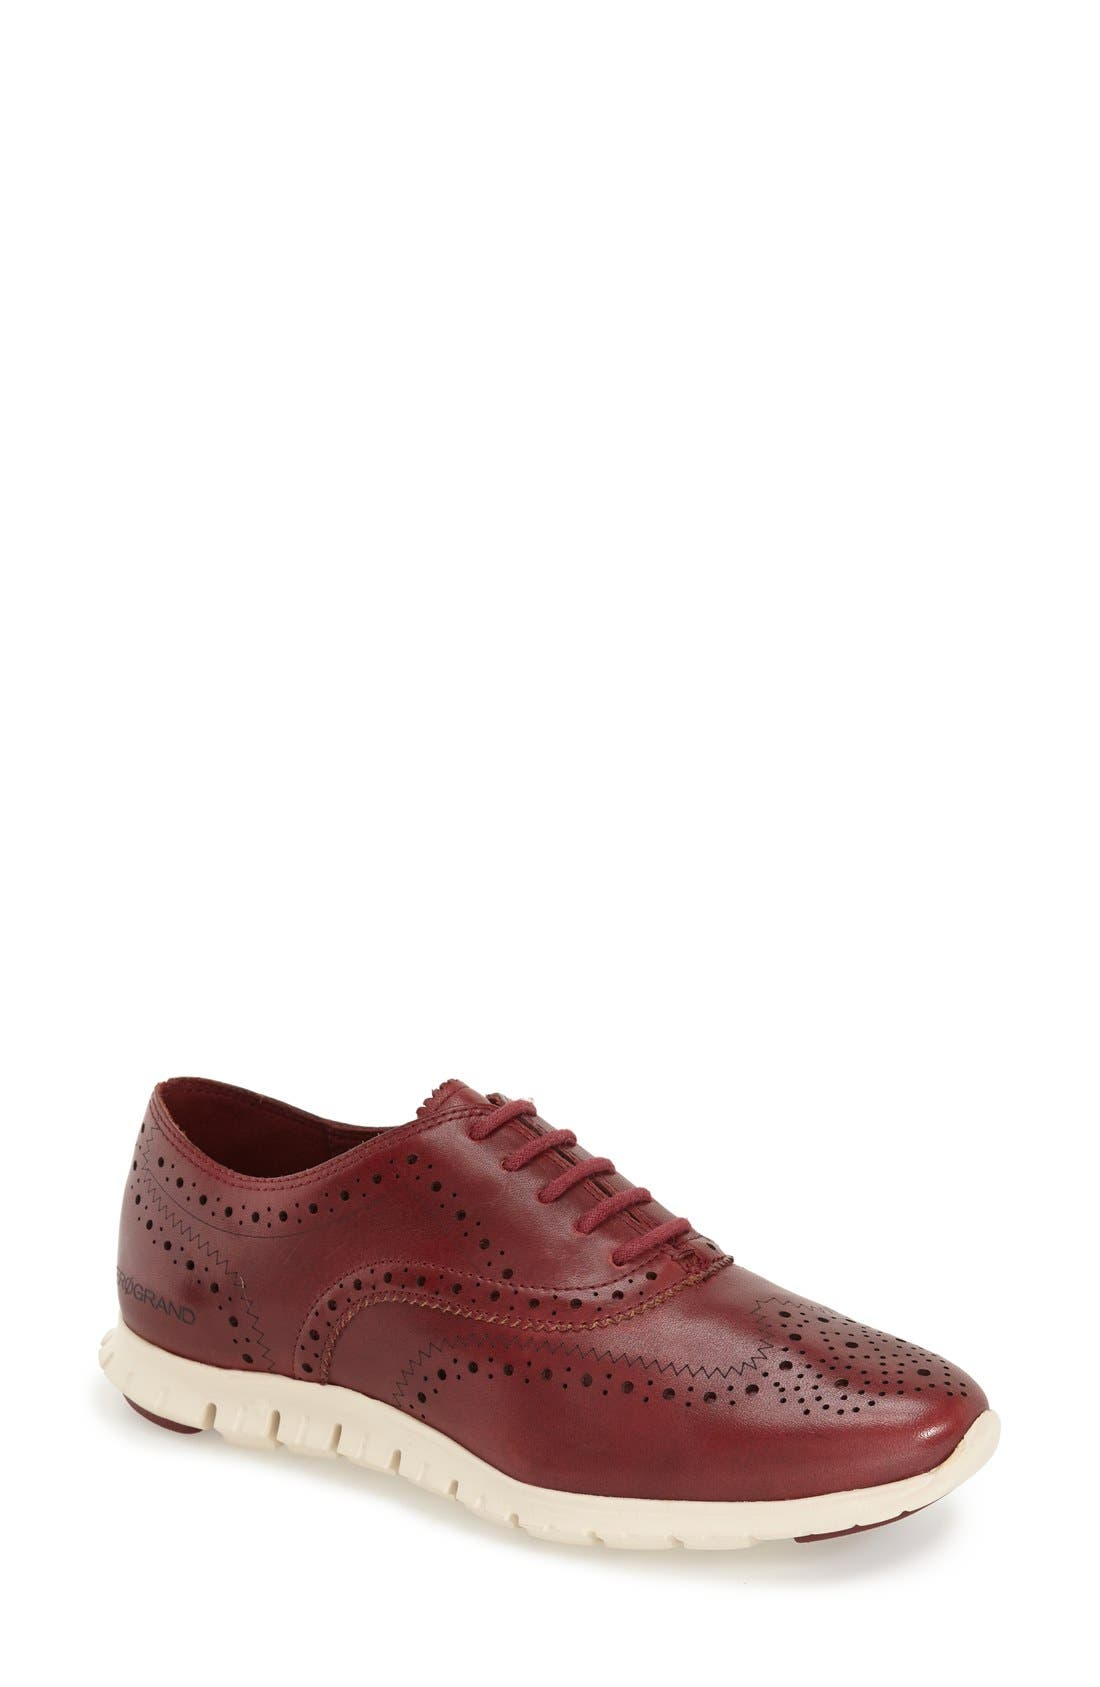 'ZeroGrand' Perforated Wingtip,                             Main thumbnail 26, color,